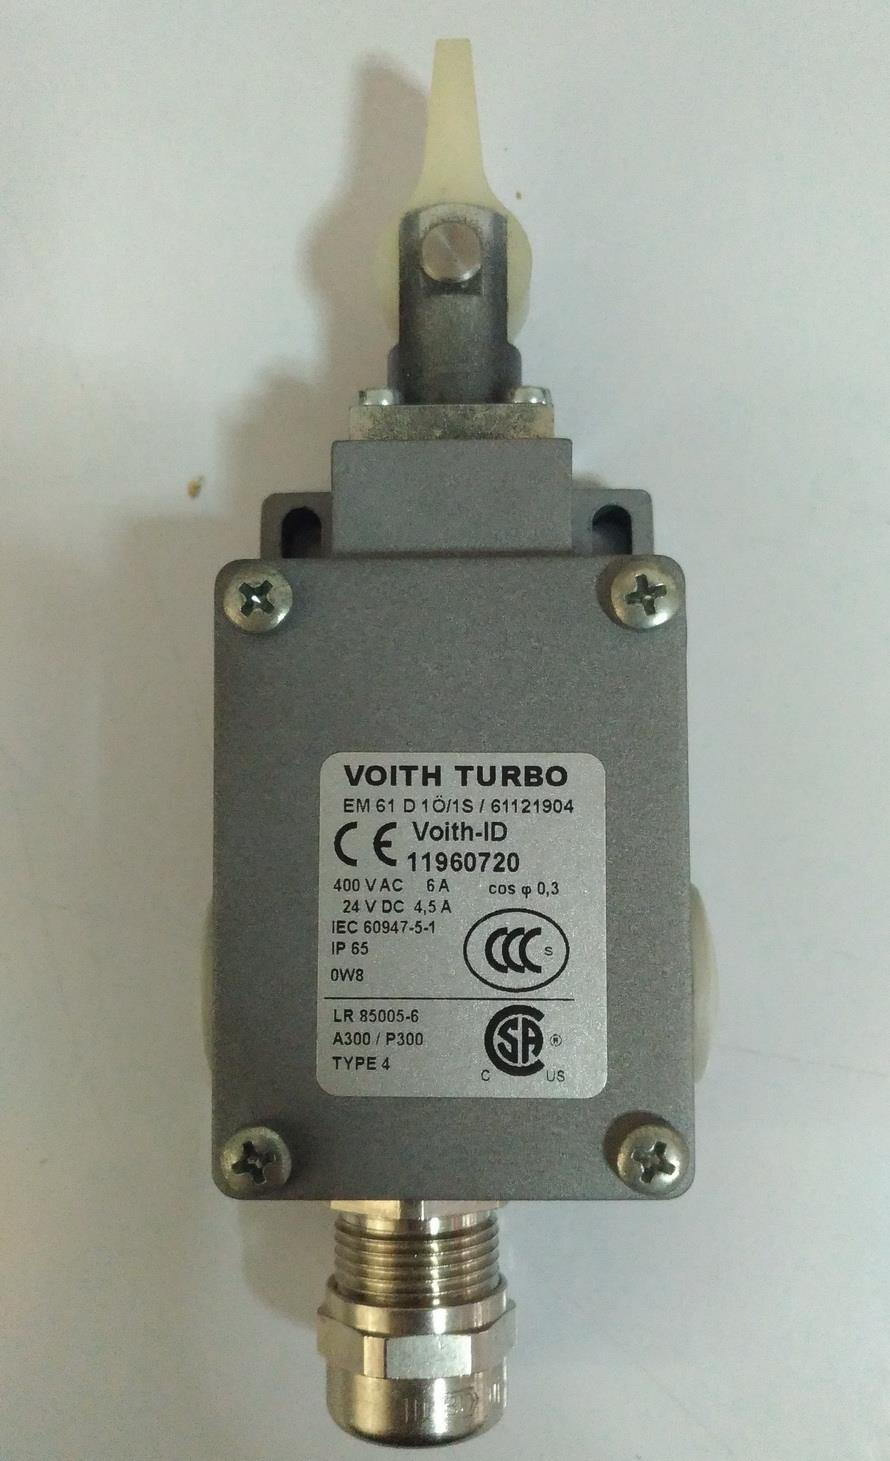 EM61 Limit Switch(Voith),Limit Switch, Switch,  ED 61 D10/1S, Voith, Coupling, Components,VOITH,Instruments and Controls/Switches